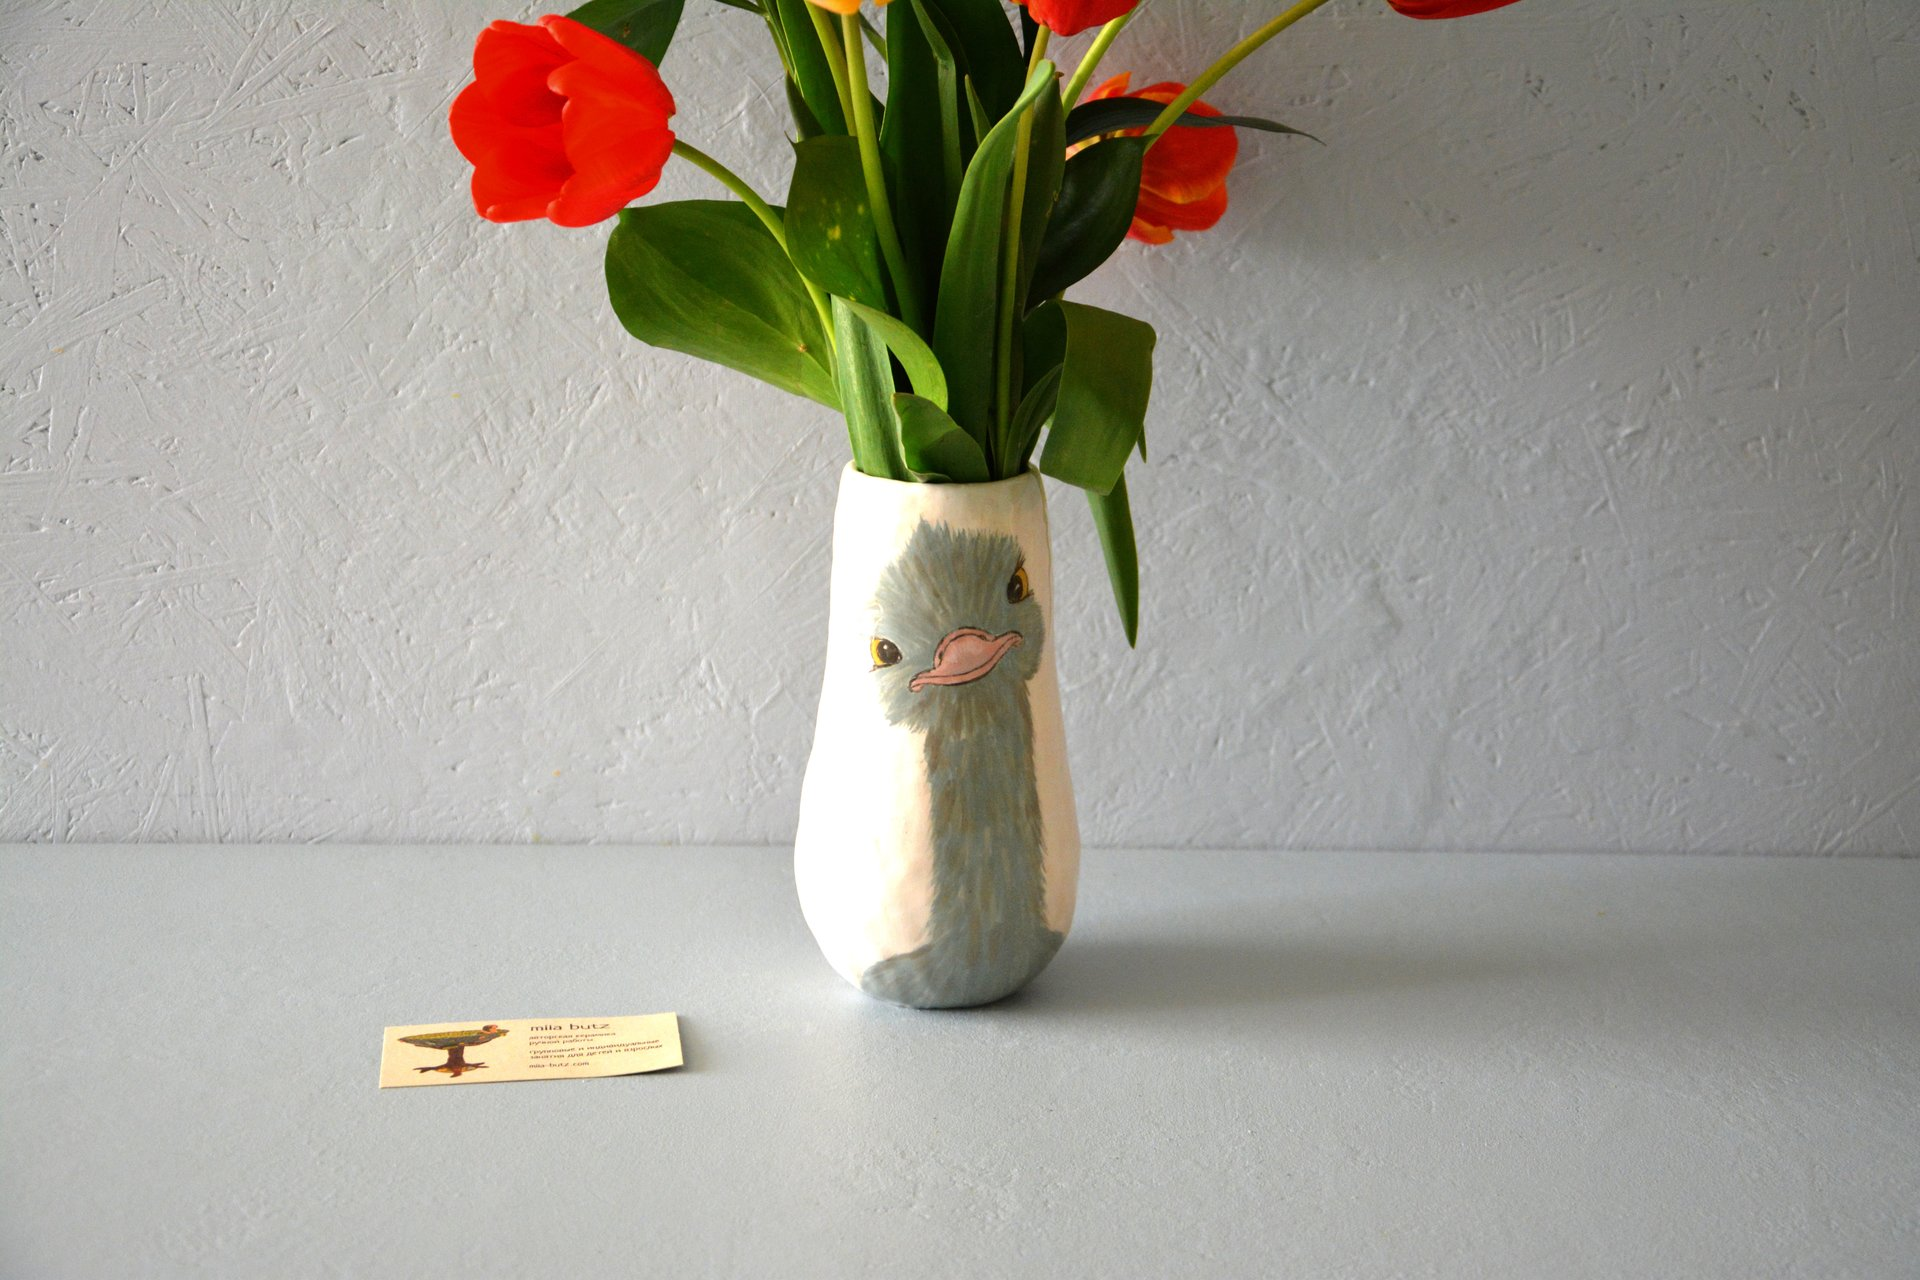 Ceramic hand-painted vase — Ostrich, height - 18 cm, photo 5 of 5. 565.